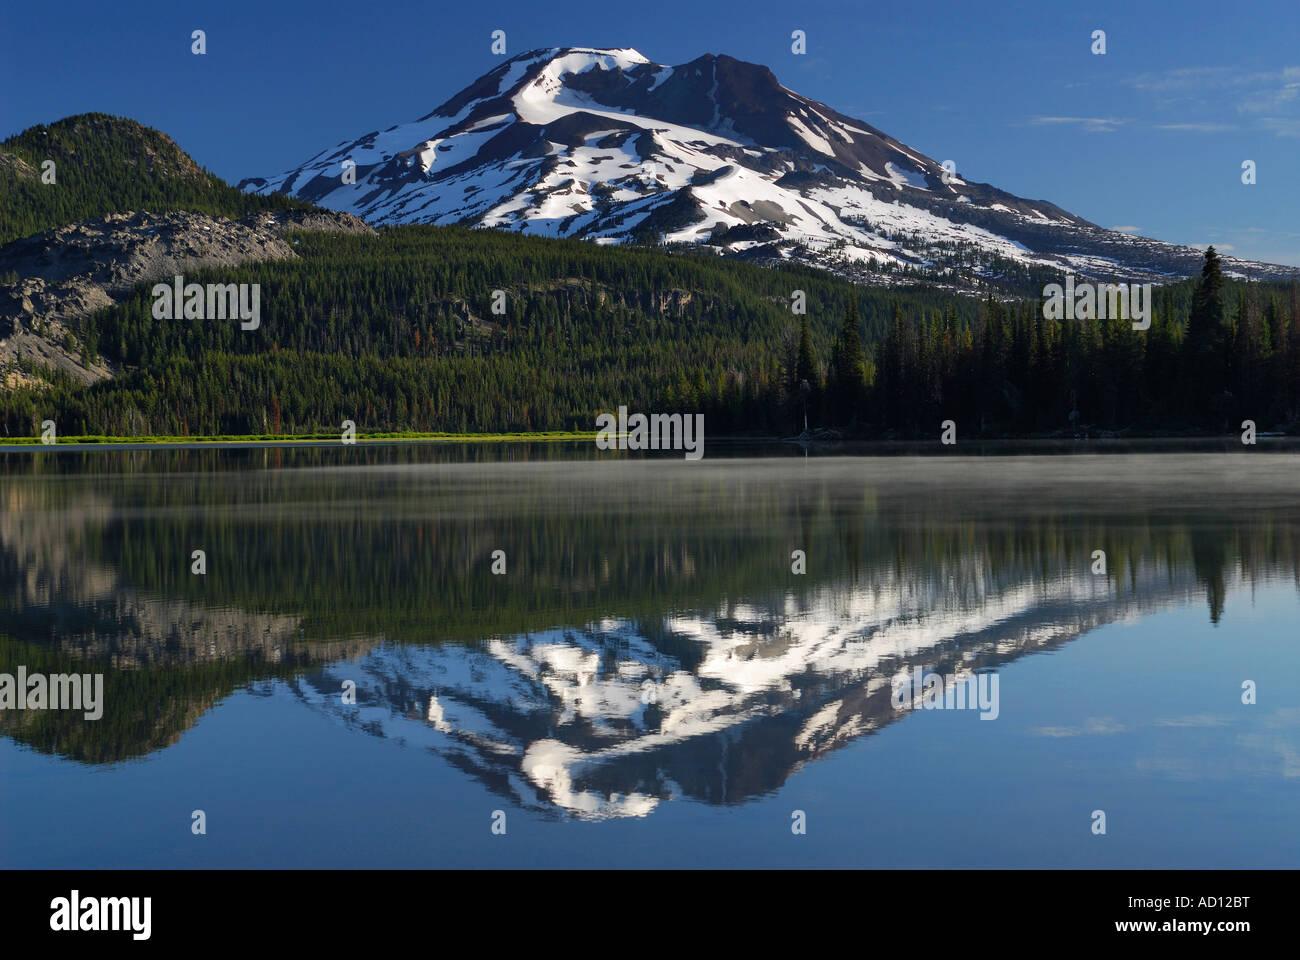 South Sister mountain reflected in Sparks Lake Deschutes National Forest Bend Oregon USA - Stock Image